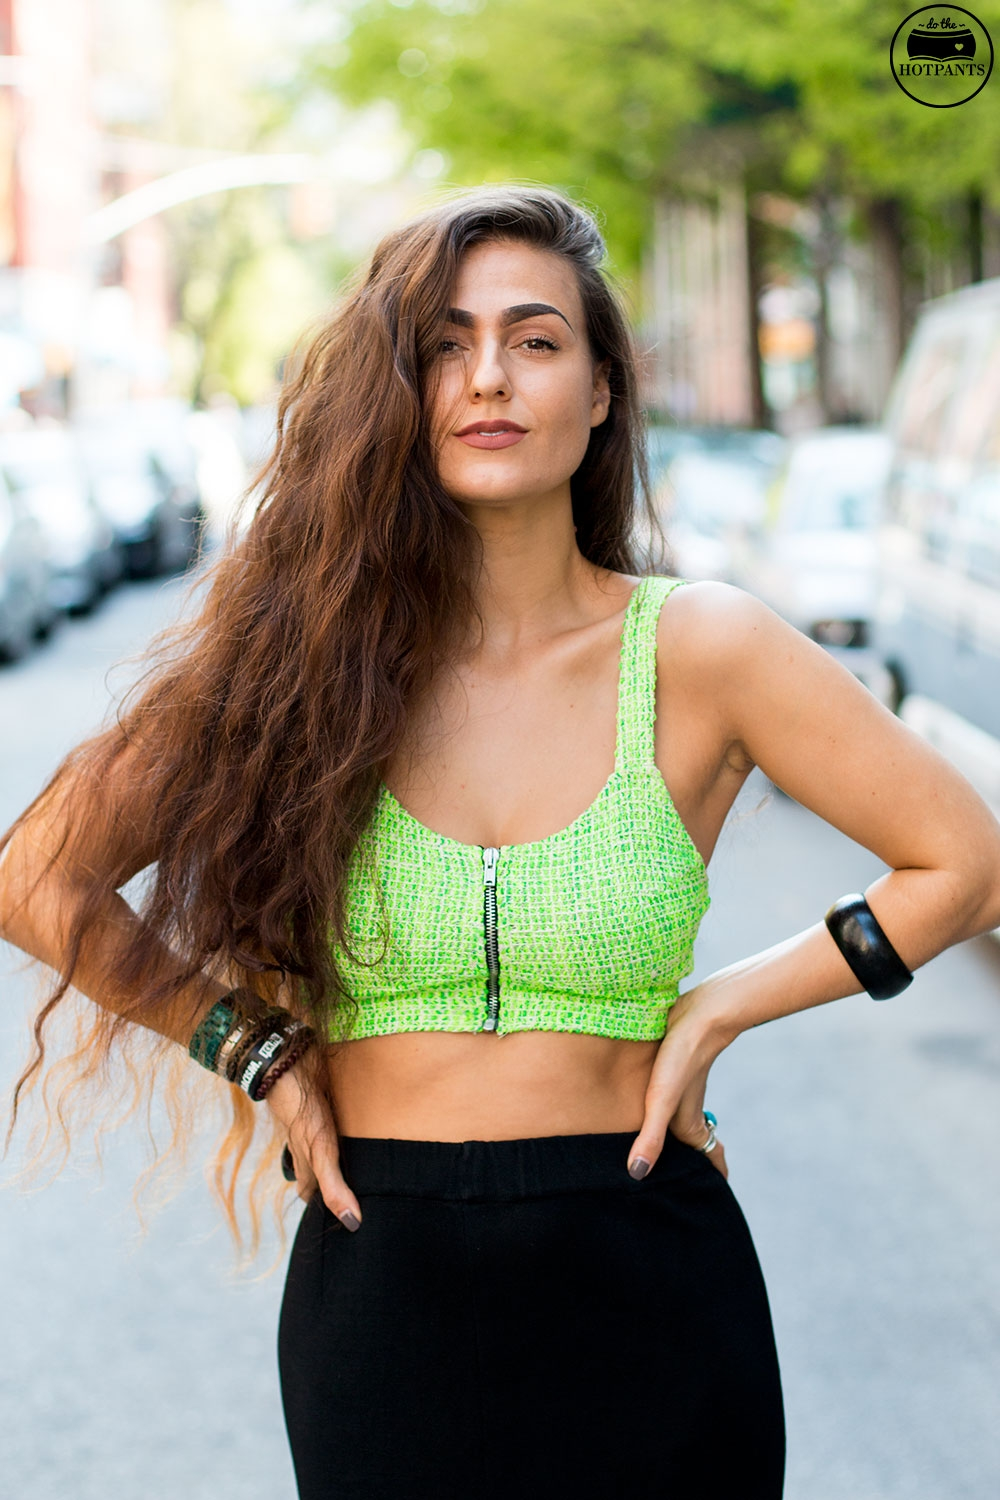 Do The Hotpants Dana Suchow Black Maxi Skirt Curvy Woman Neon Green Crop Top Midriff_IMG_7400